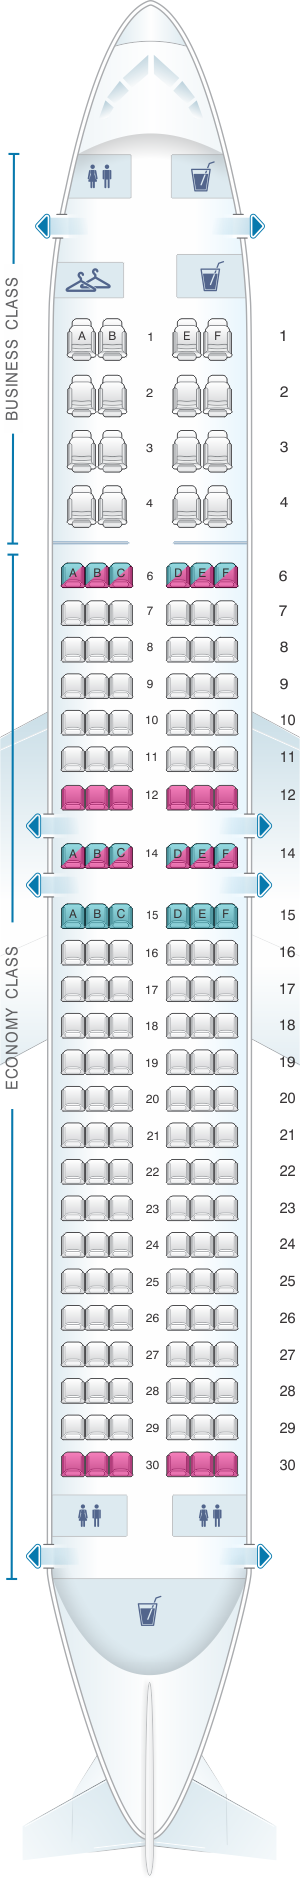 Seat map for Aeromexico Boeing B737 800